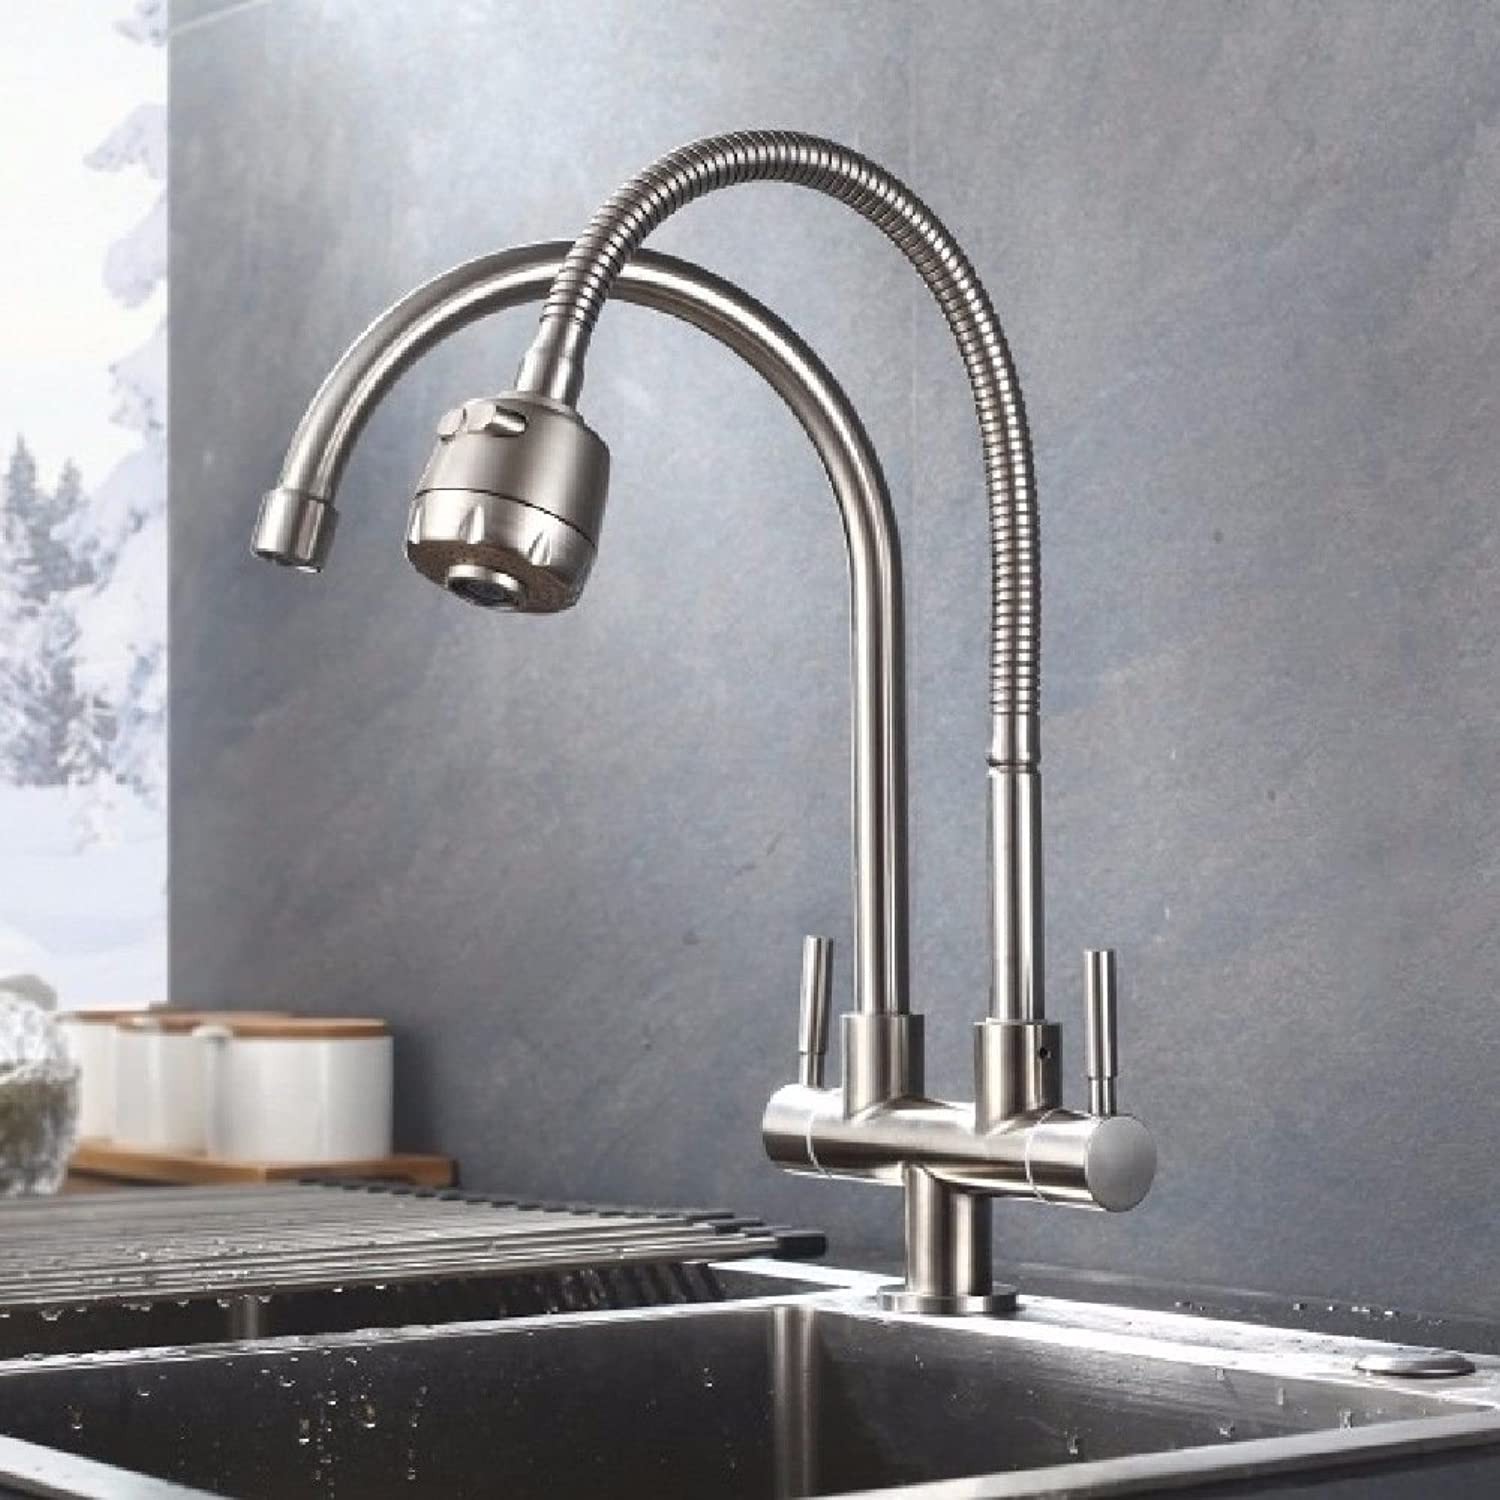 Lpophy Bathroom Sink Mixer Taps Faucet Bath Waterfall Cold and Hot Water Tap for Washroom Bathroom and Kitchen 304 Stainless Steel Bidirectional Single Cold Universal Tube Hot and Cold B